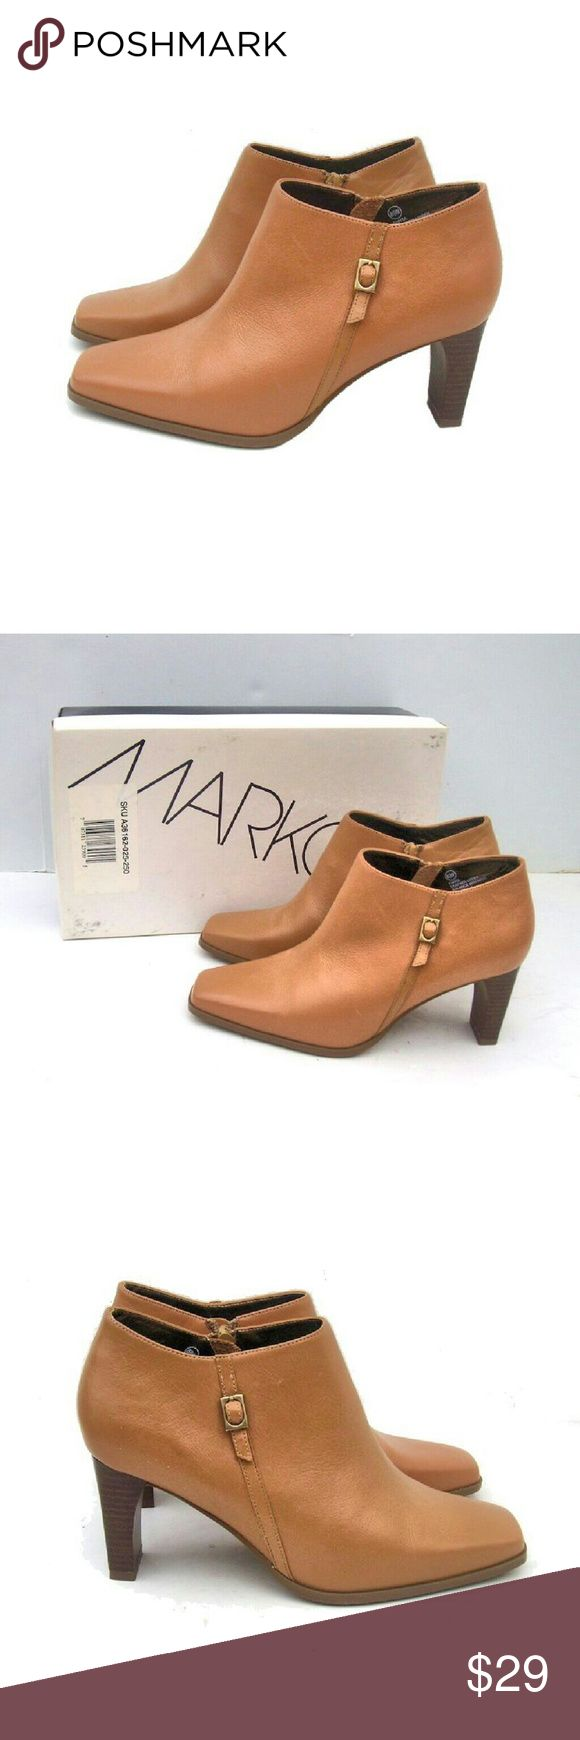 "Markon Leather Ankle Boots Booties Shoes NIB MARKON camel leather ankle boots with buckle detail. Size 8.5 Wide. 3"" heel. New in box. Markon Shoes Ankle Boots & Booties"